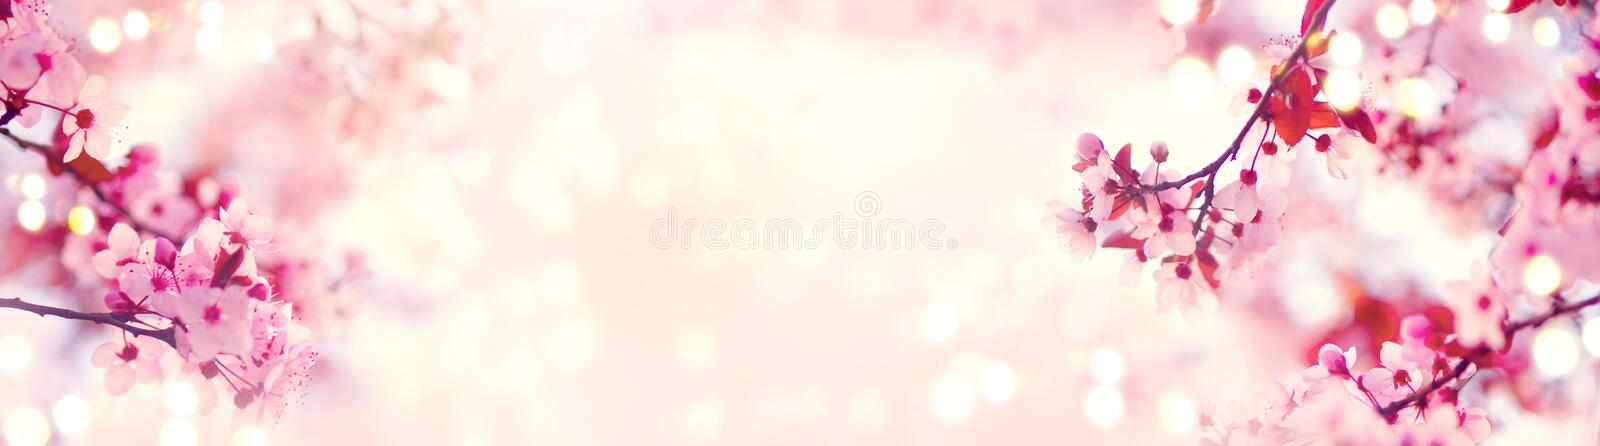 Spring border or background art with pink blossom. Beautiful nature scene with blooming tree stock photo